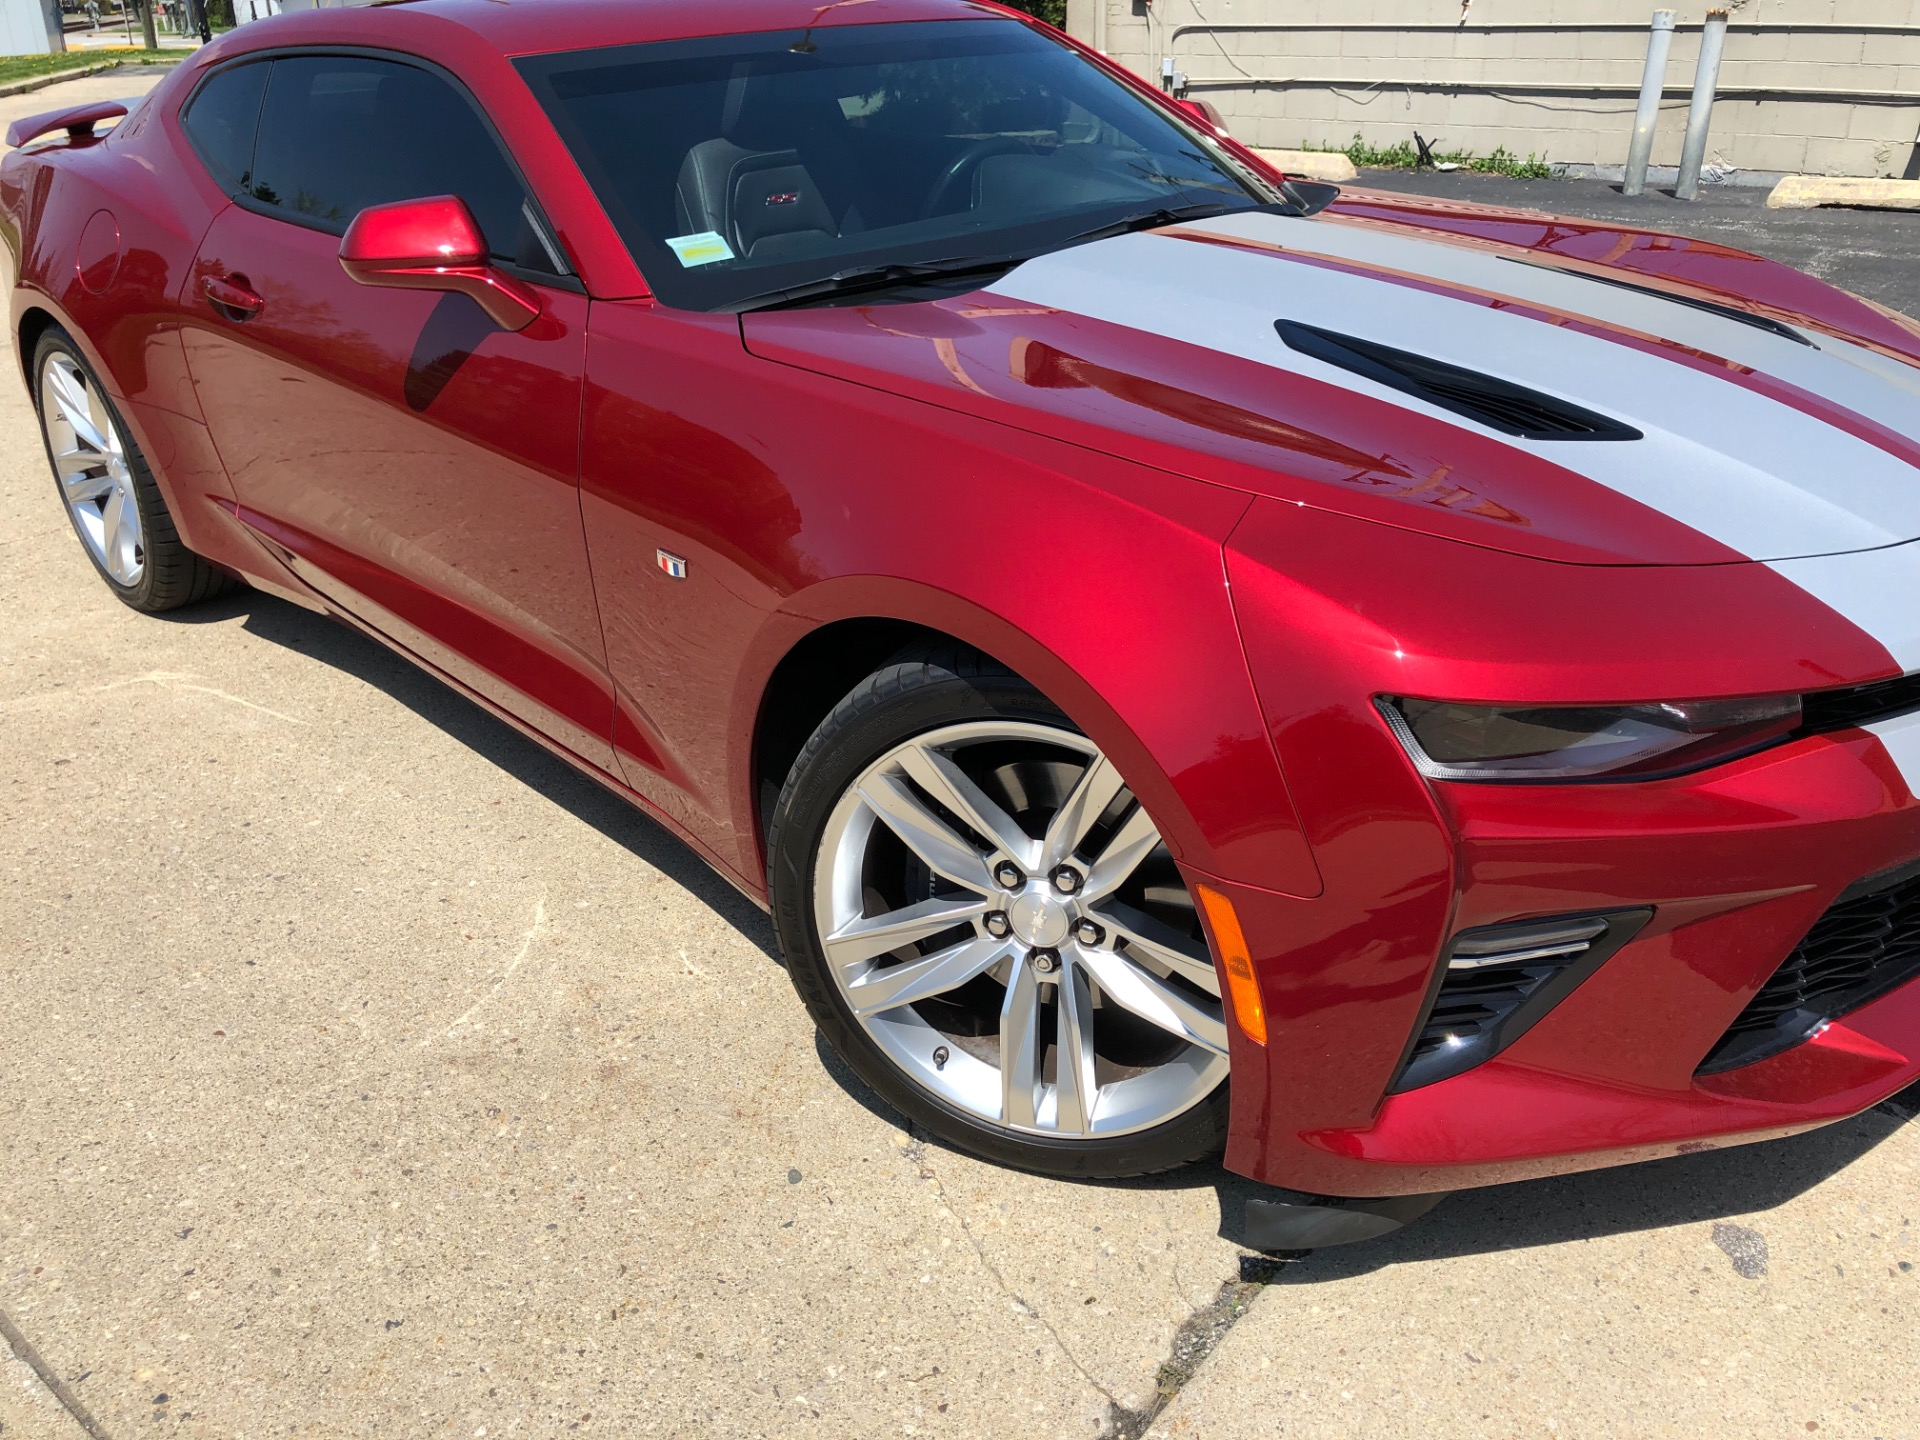 Used 2016 Chevrolet Camaro -2SS-1 OWNER CAR-LOW MILES-PADDLE SHIFT-MSRP $46,785- | Mundelein, IL